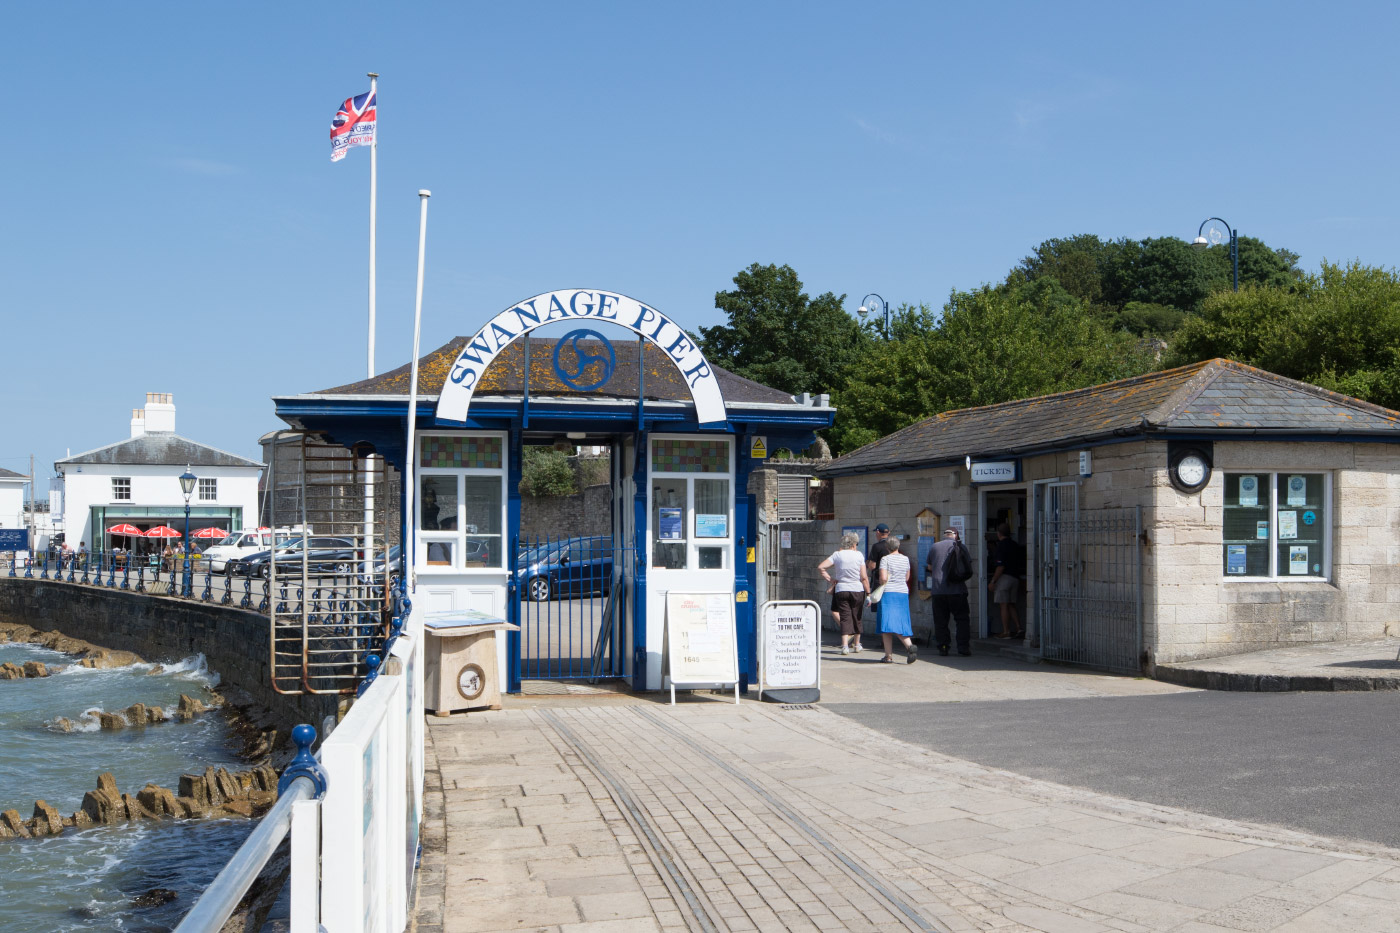 Entrance to Swanage Pier